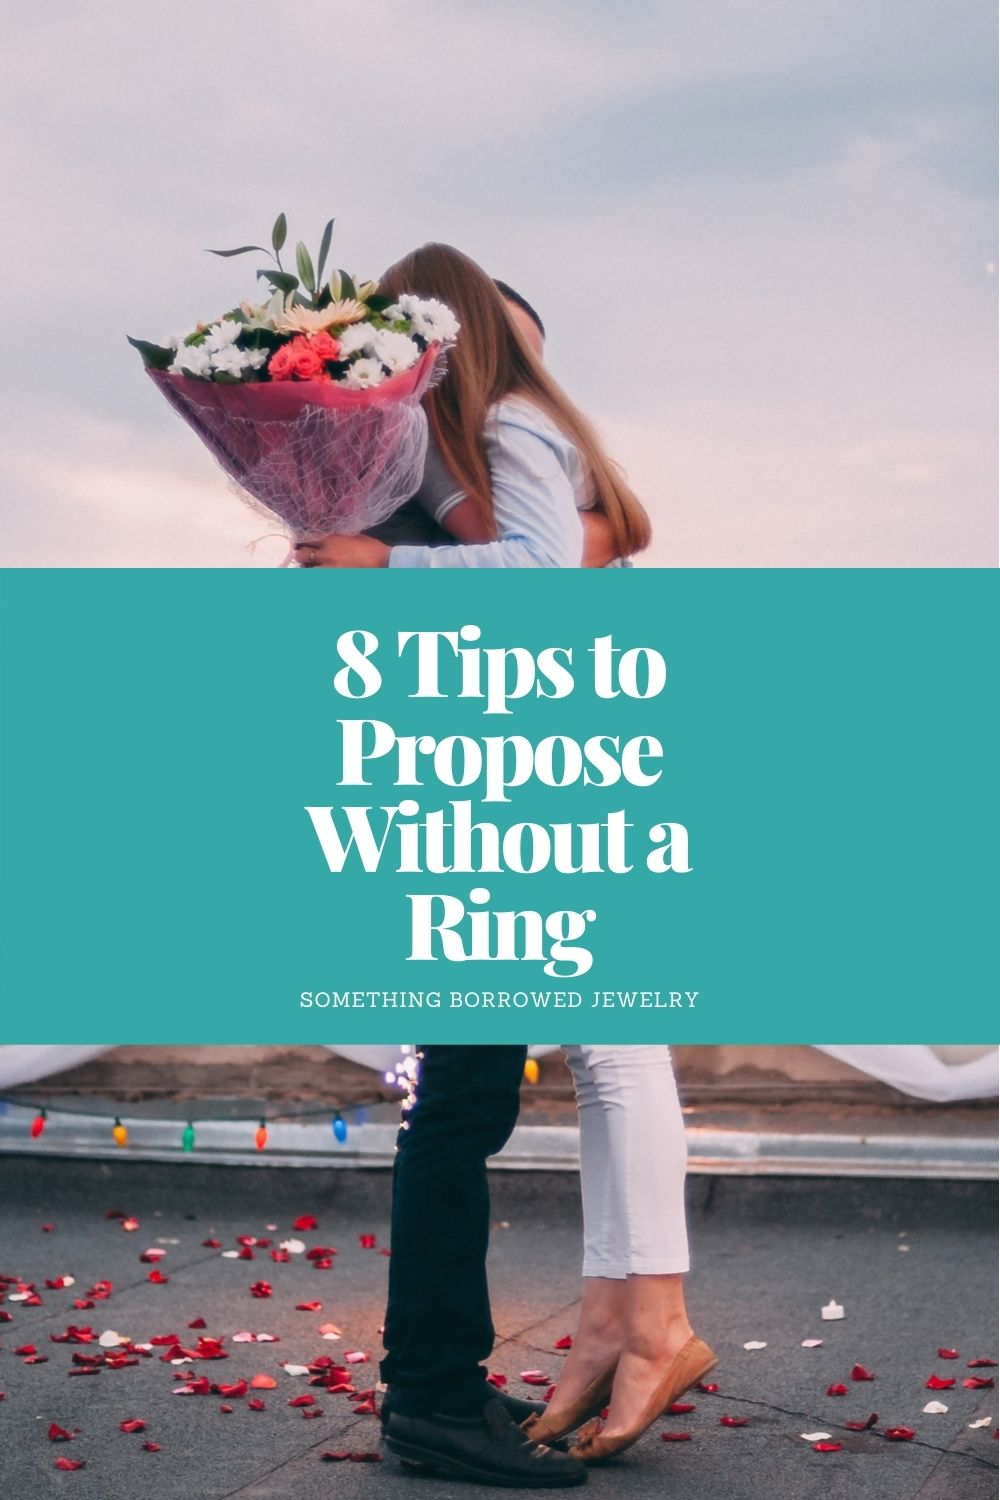 8 Tips to Propose Without a Ring pin 2